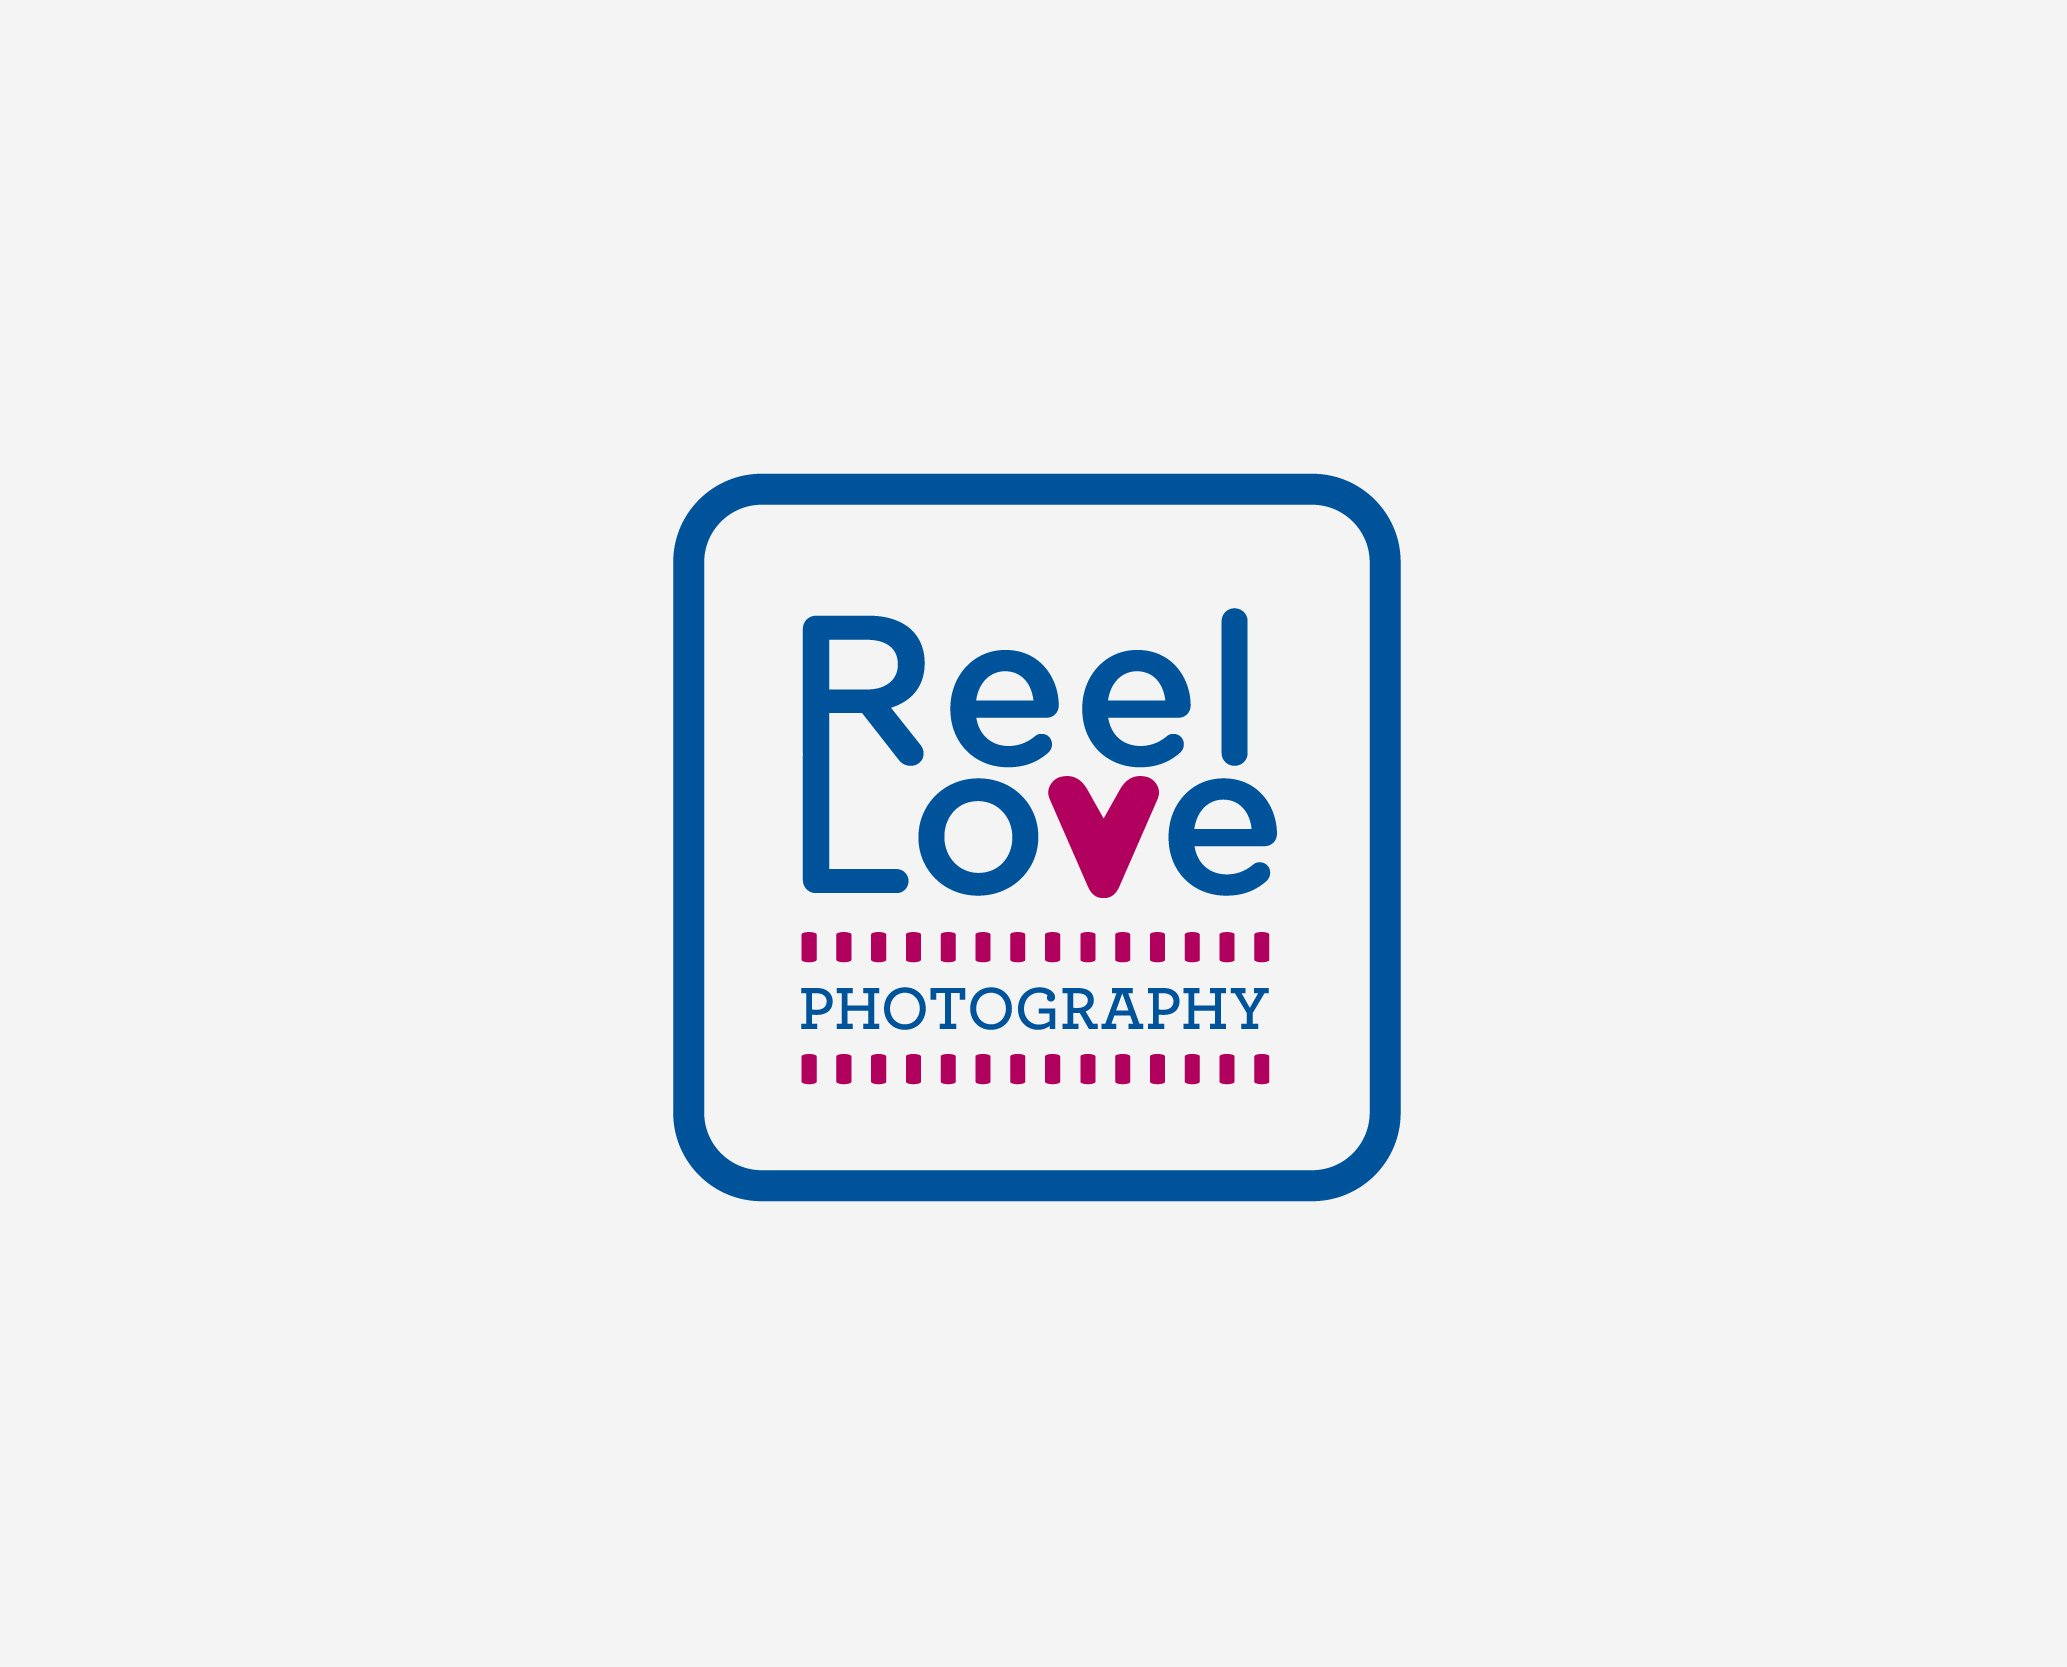 Reel Love Photography